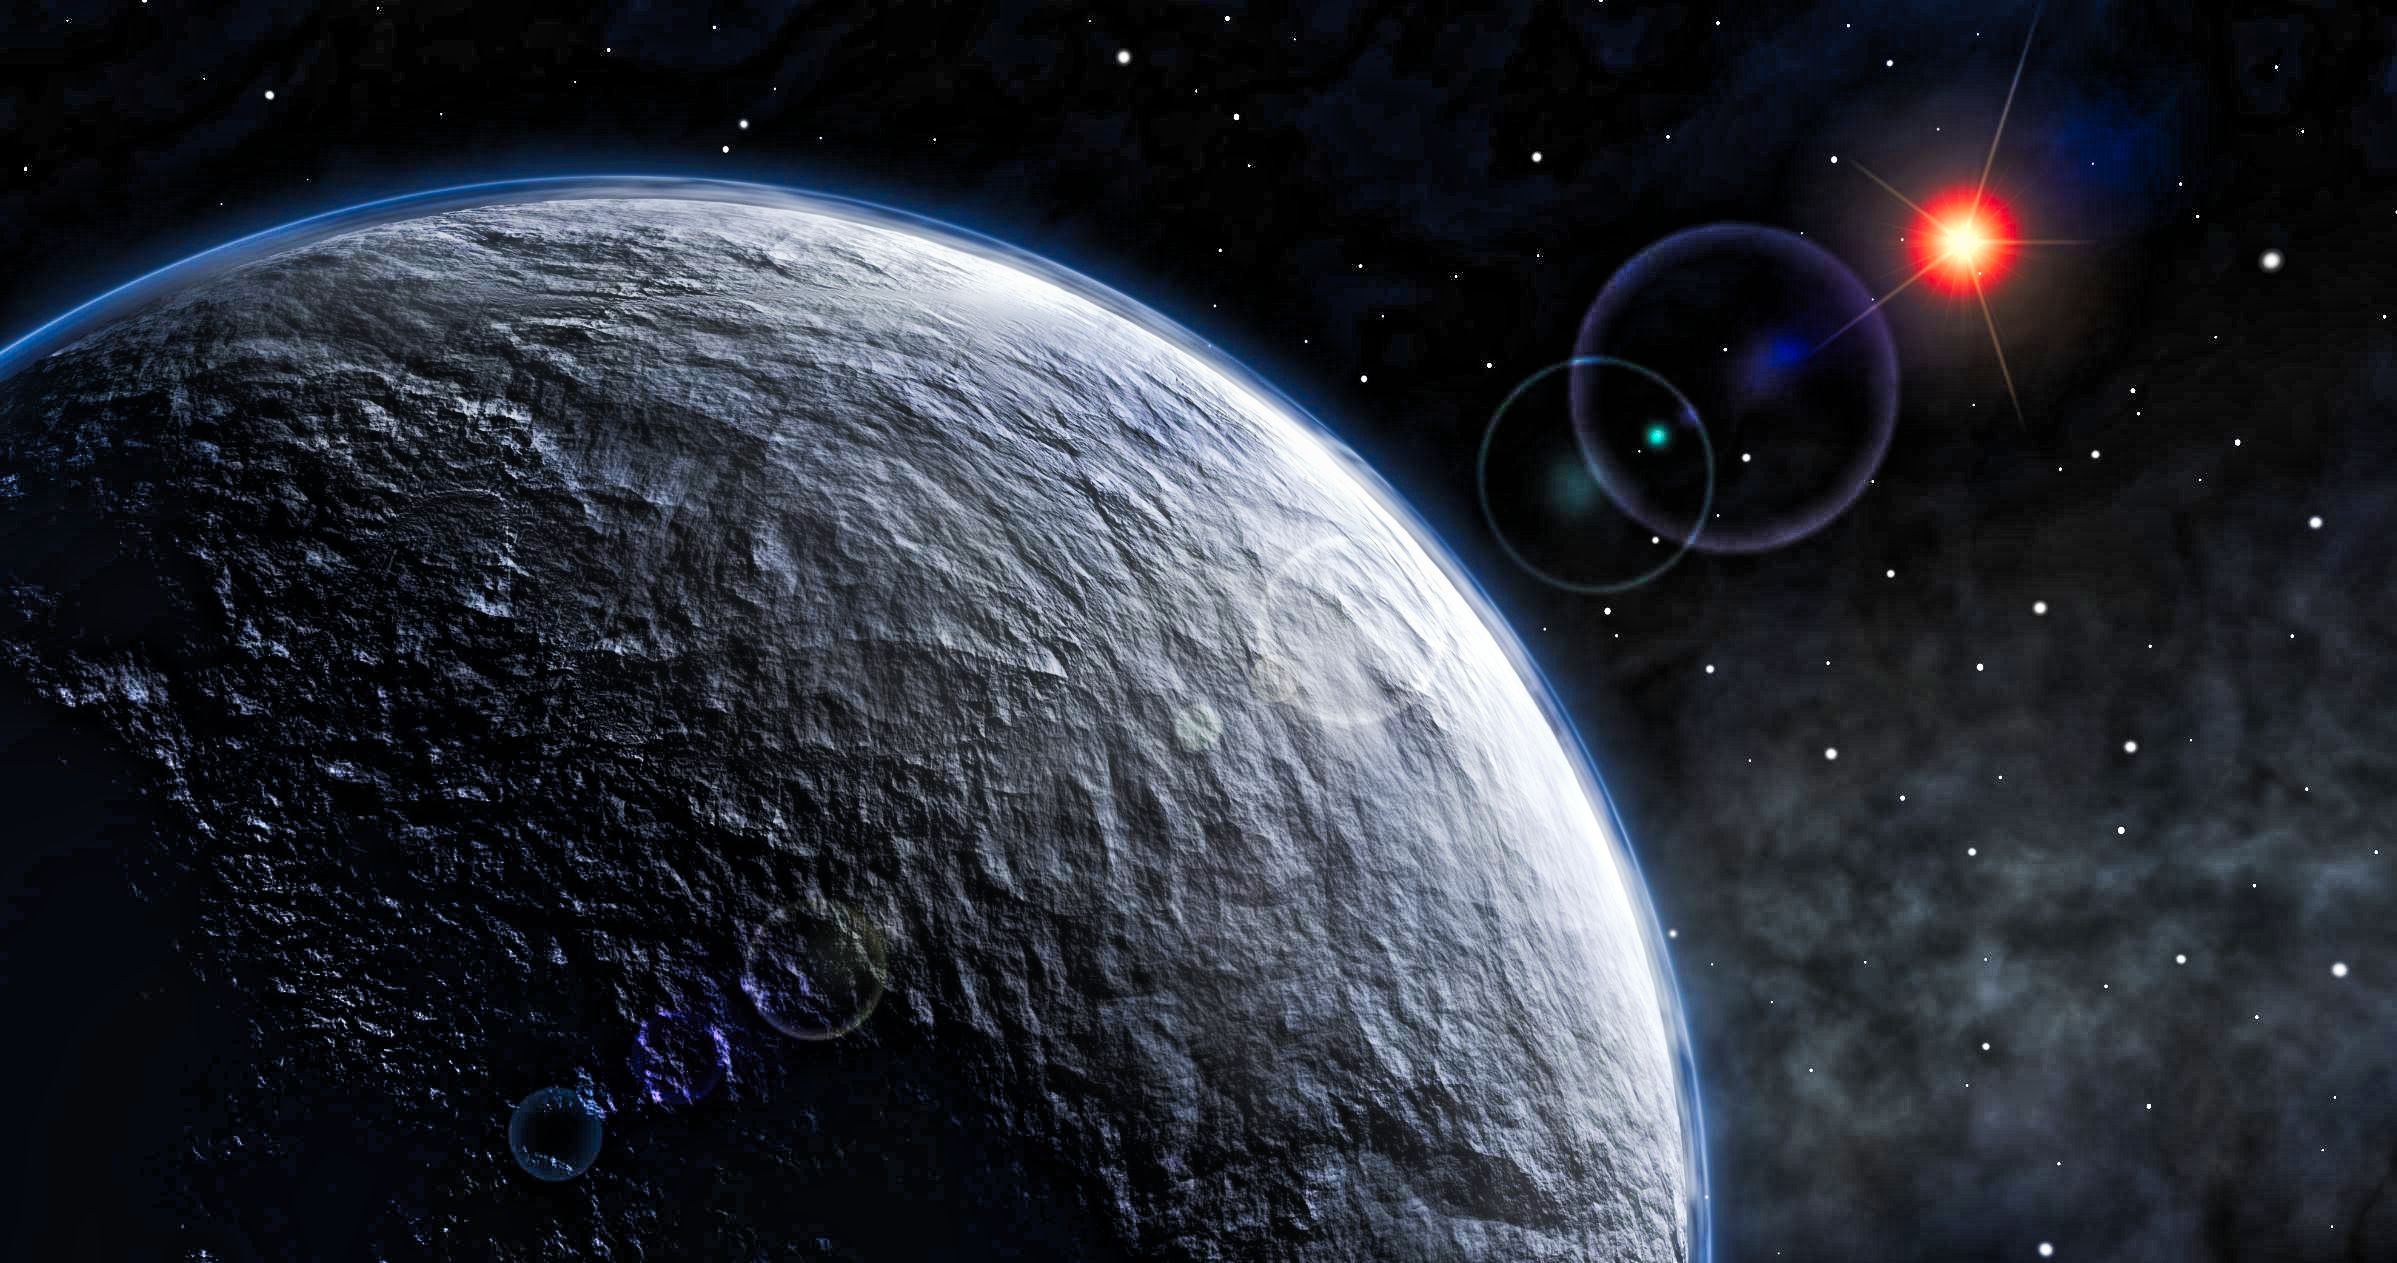 Snowball / icy exoplanet - Image Credit  ESO  -  HDR tune by Universal-Sci  -  CC BY 4.0